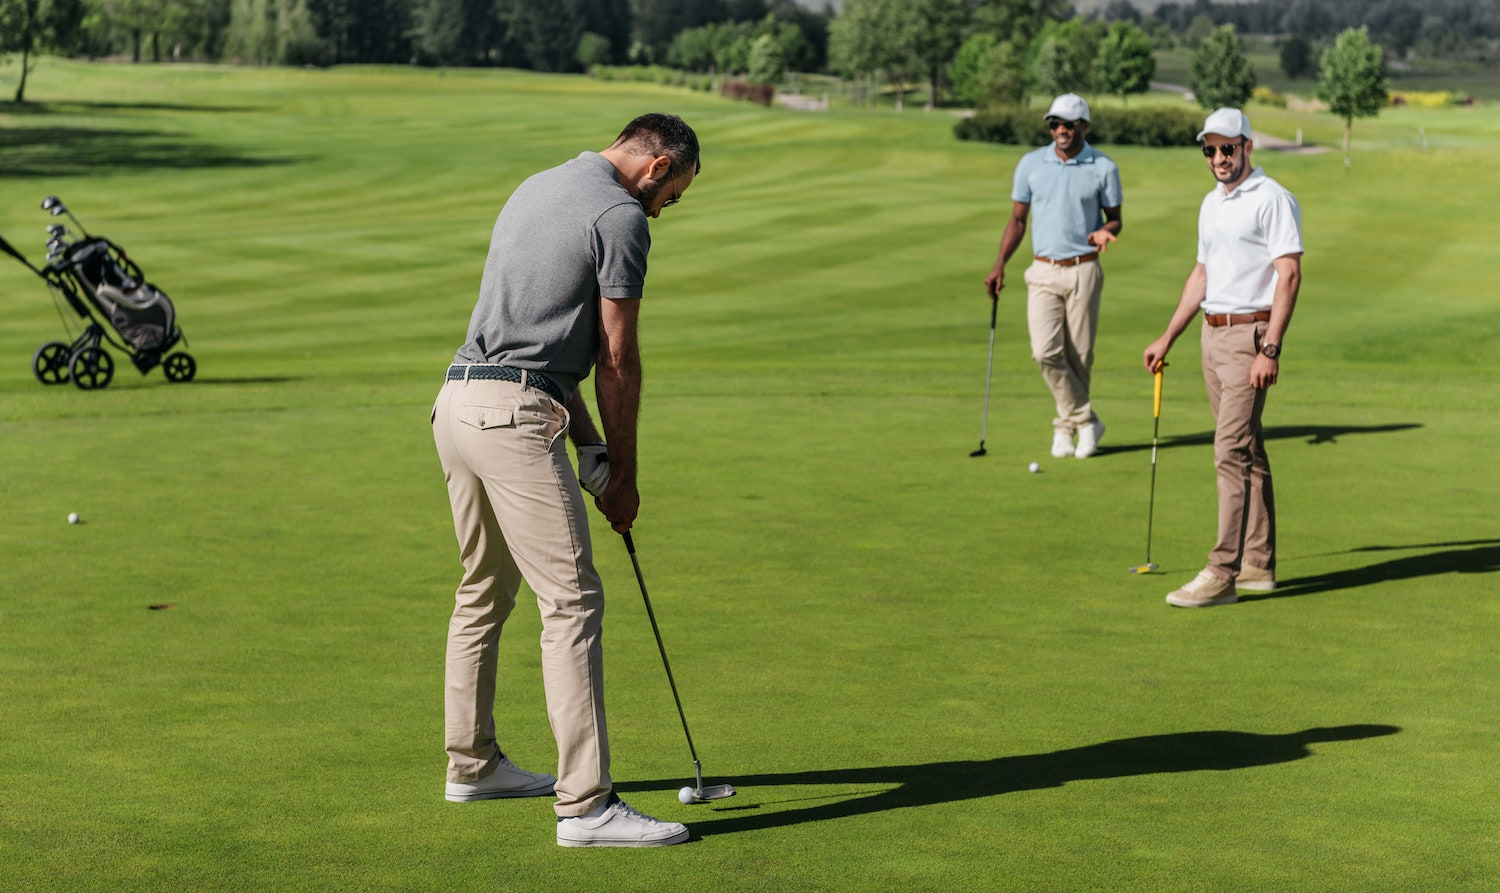 Five Fun Golf Games You Can Play with a Foursome